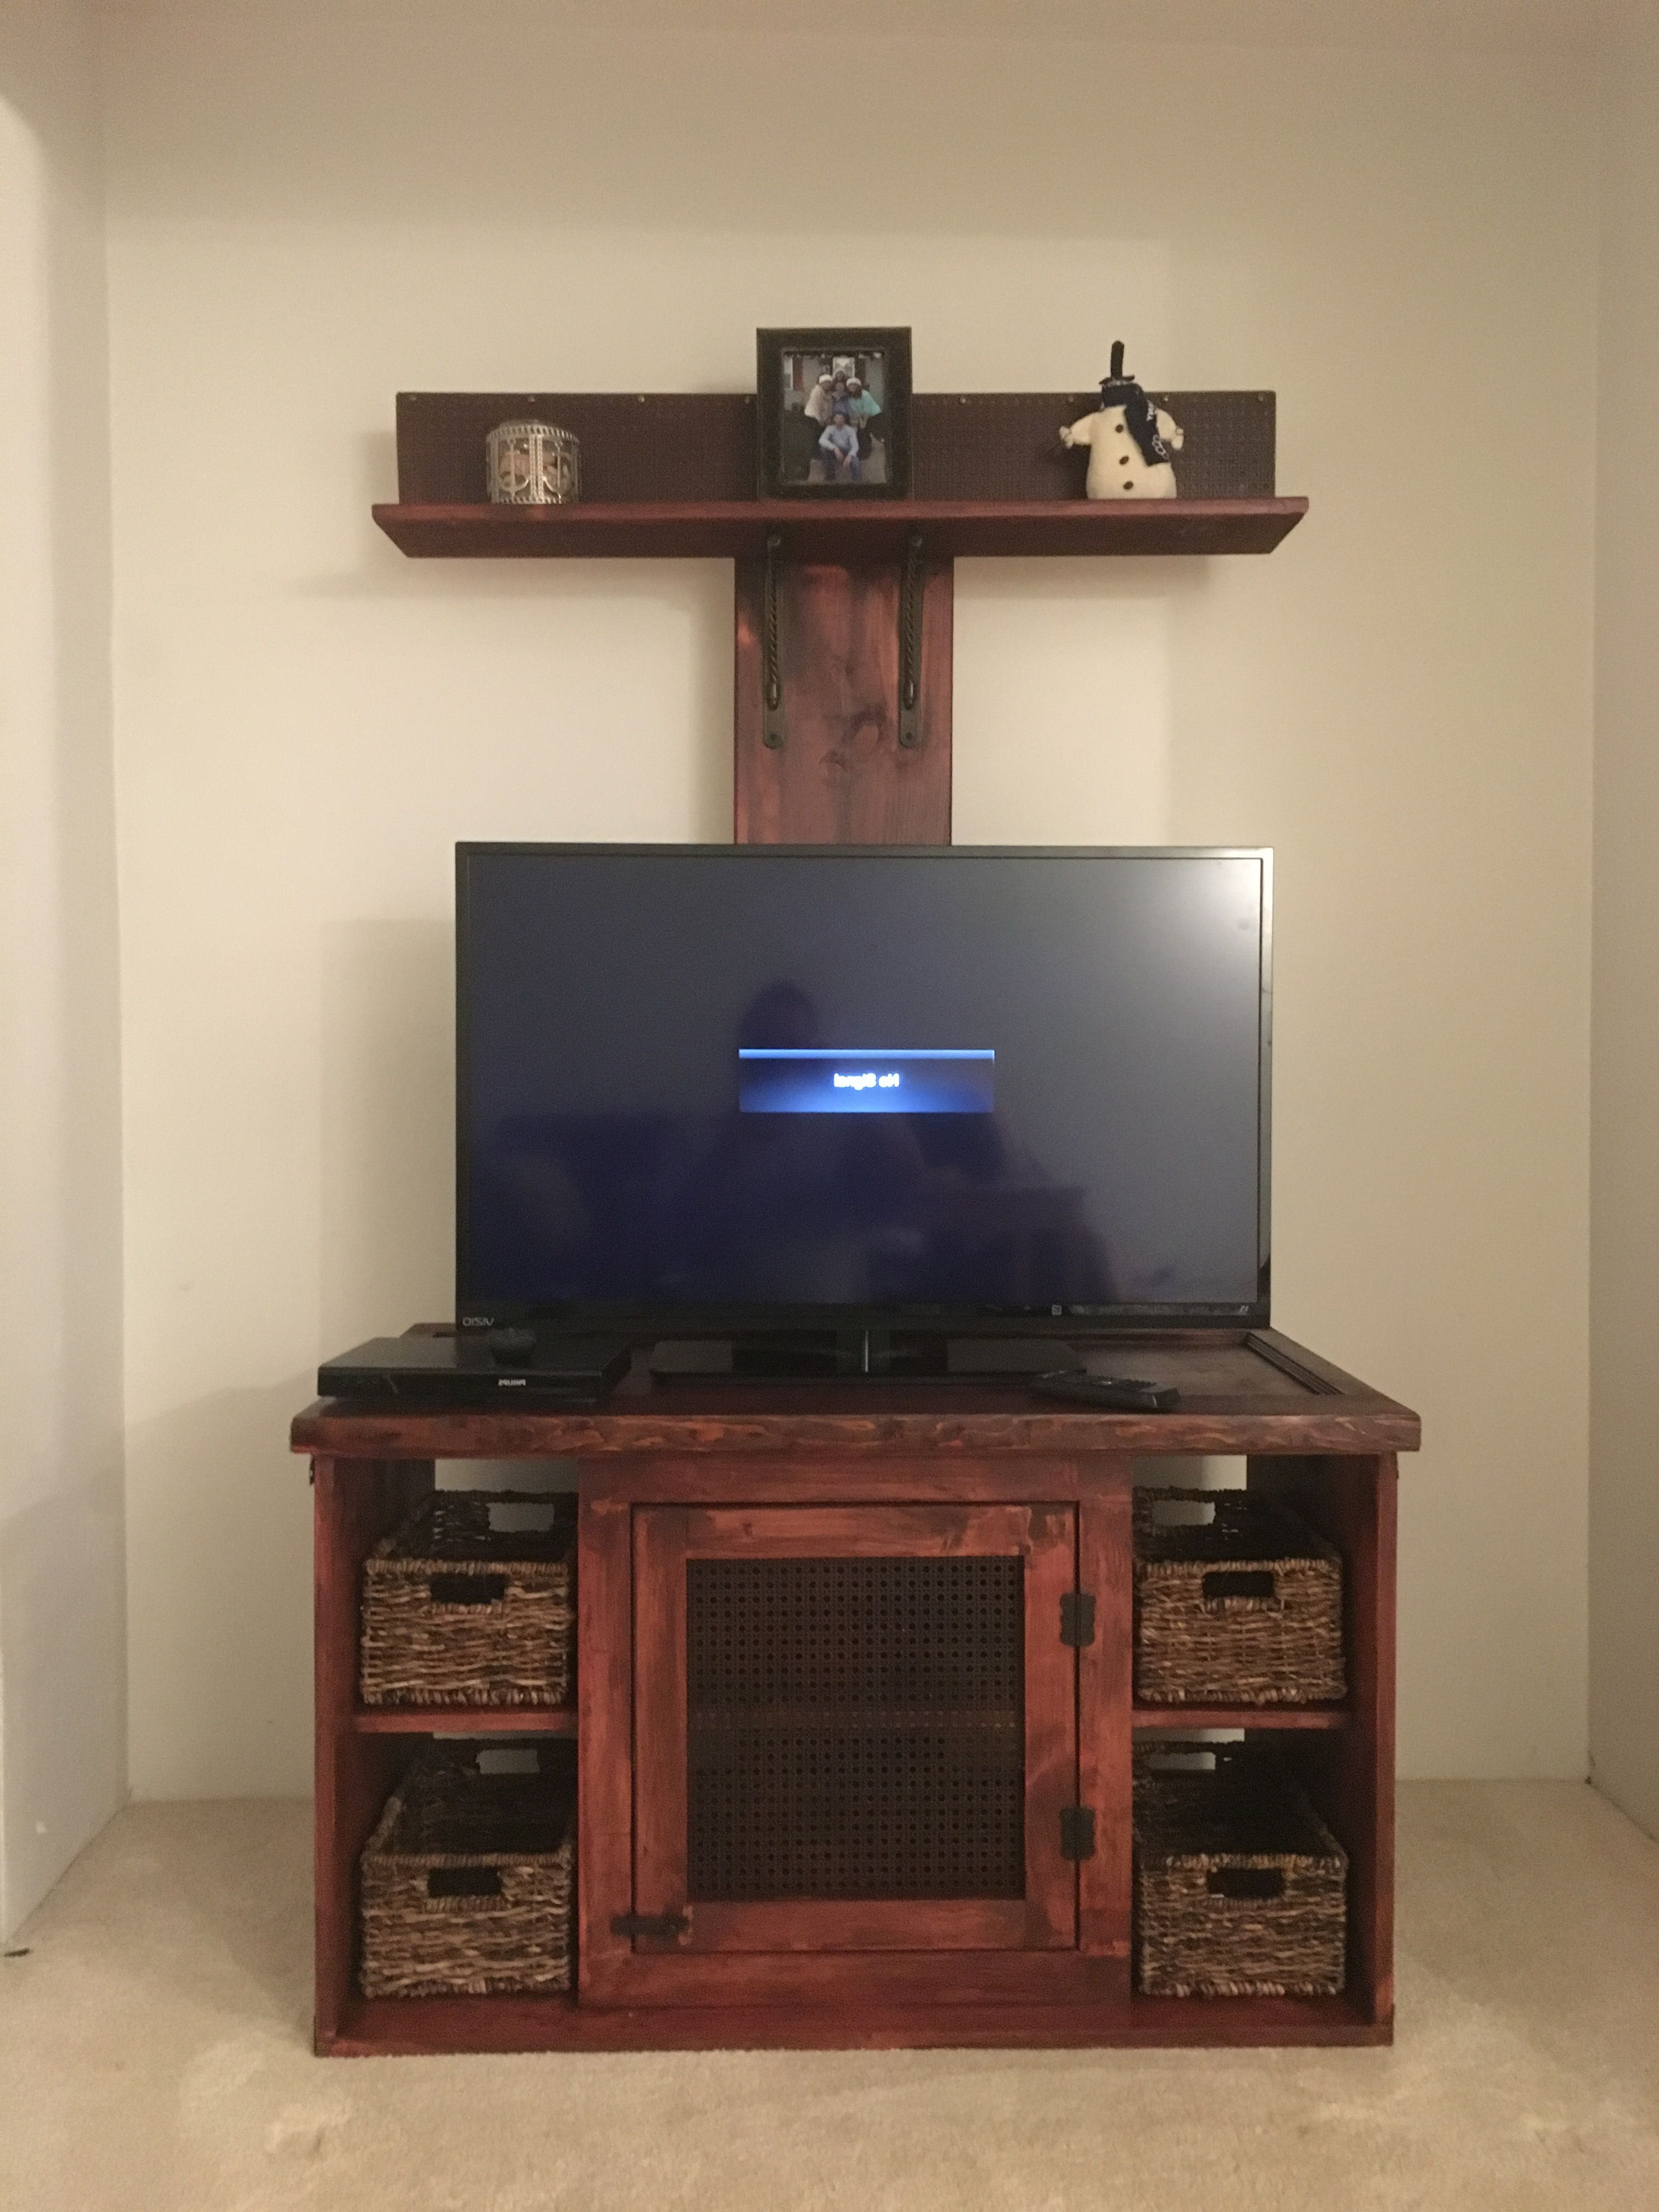 Upright Tv Stands For Most Recent Custom Designed Tv Stand With An Upright Shelf. Designed To Hide (Gallery 1 of 20)